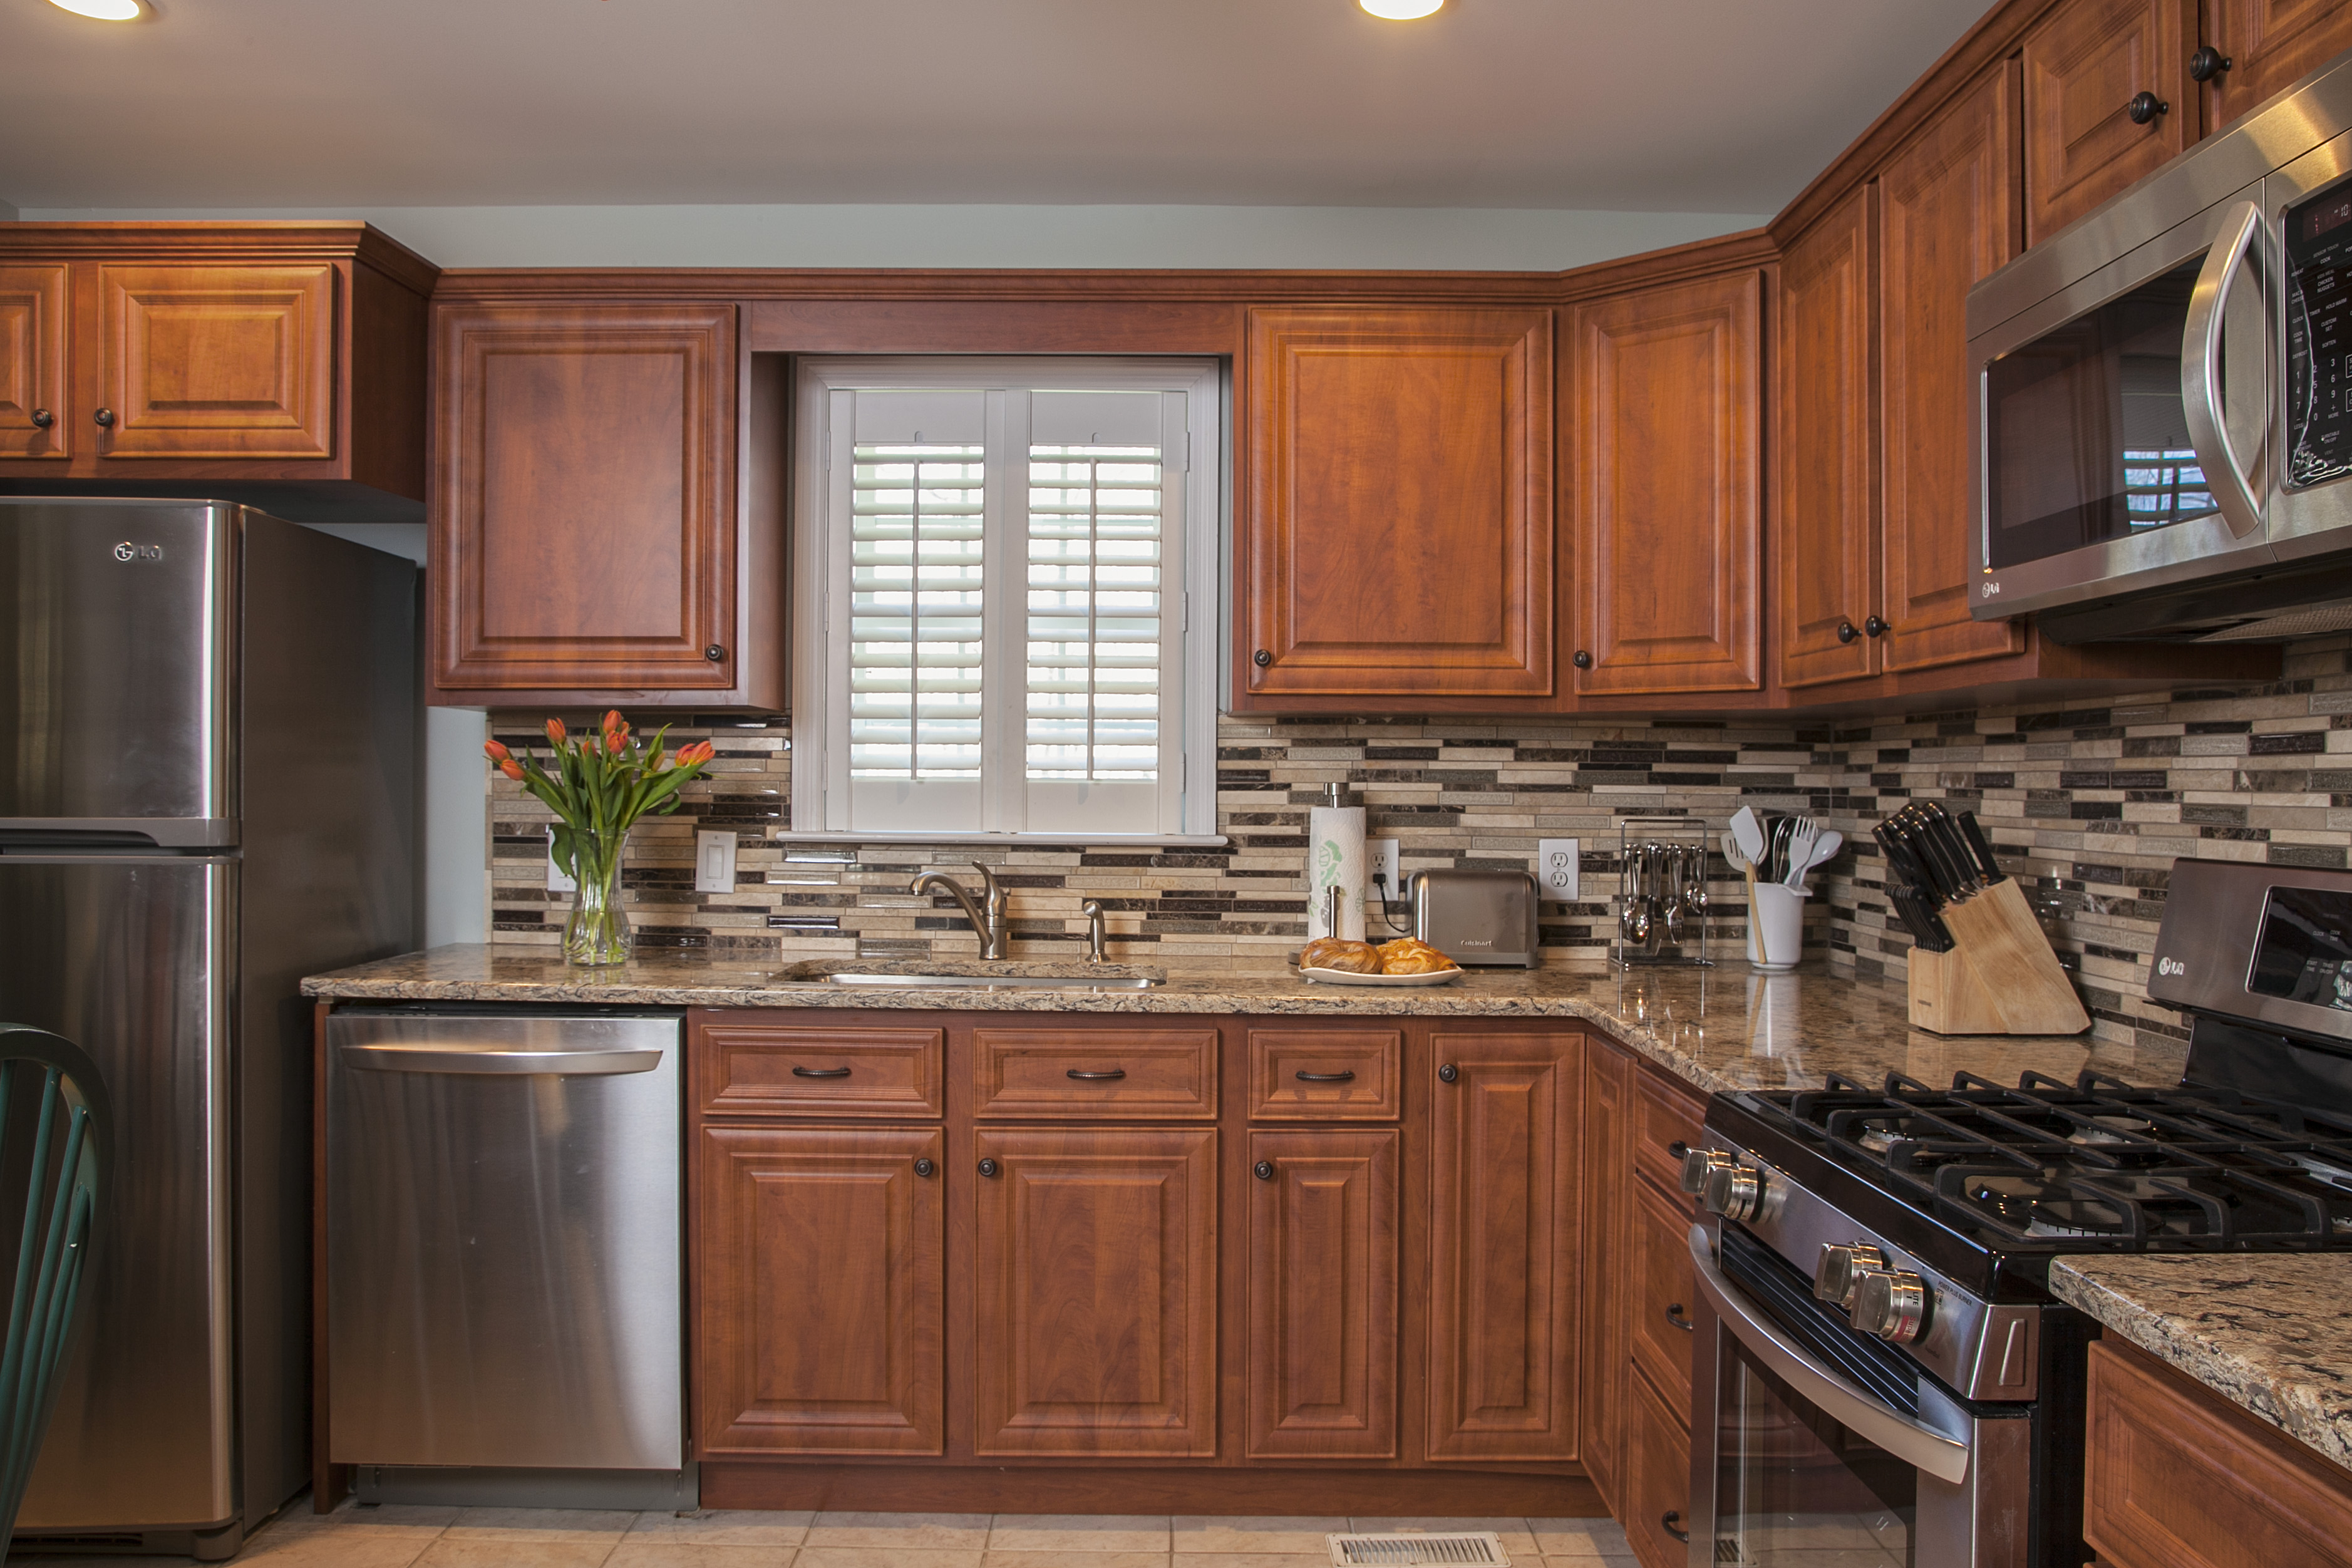 Kitchen Remodel with Tile Backsplash and Cherry Cabinets